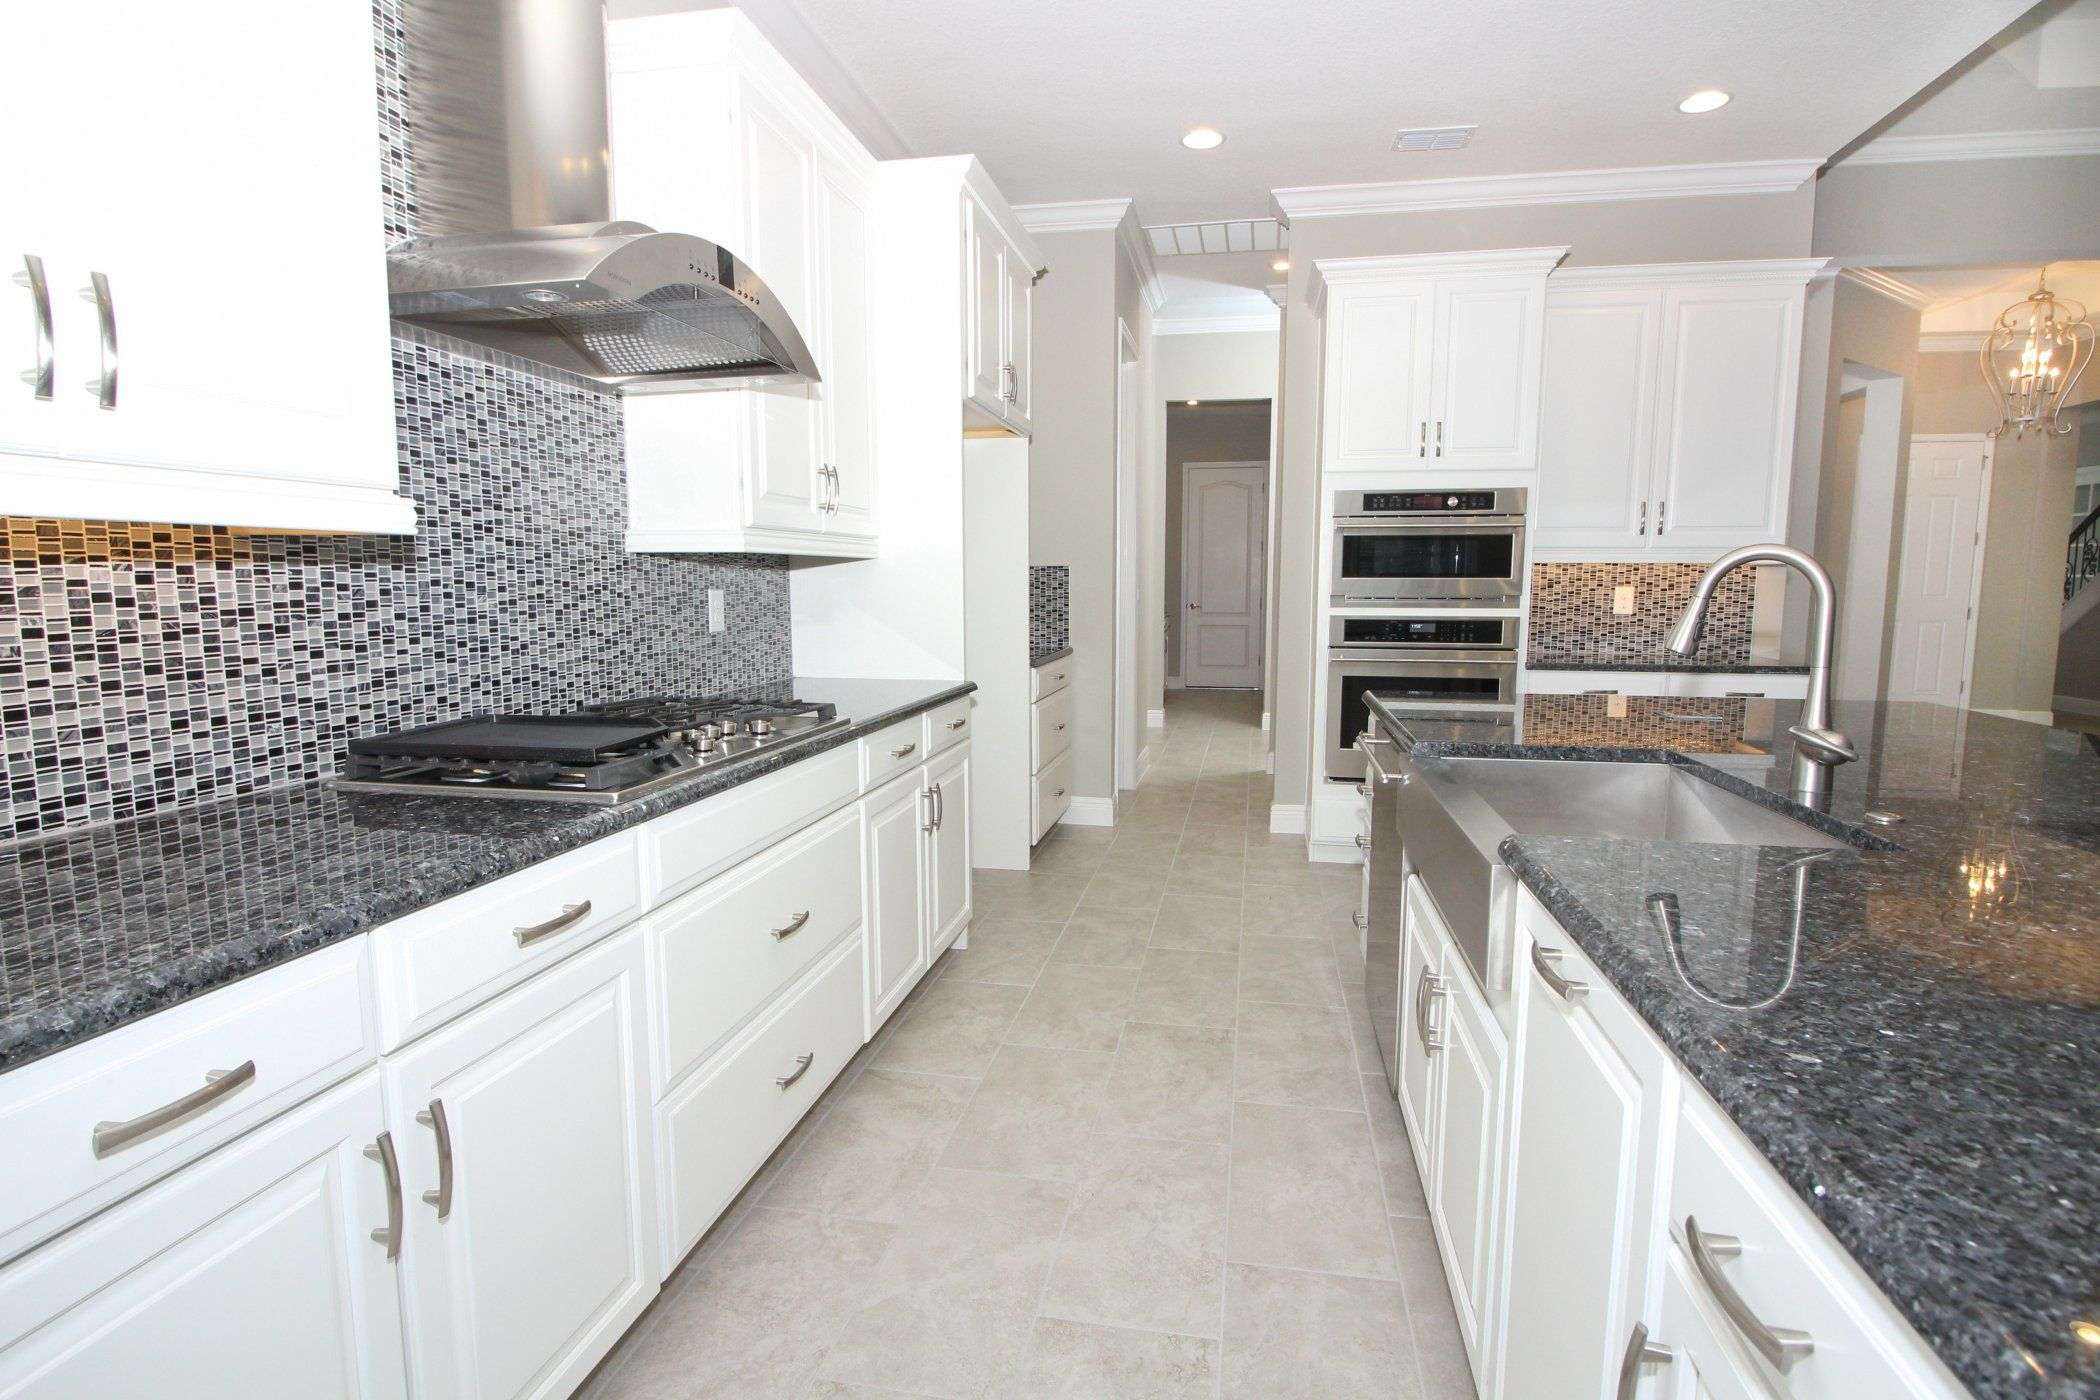 Kitchen featured in the Monte Carlo Plan By Taylor Morrison in Orlando, FL